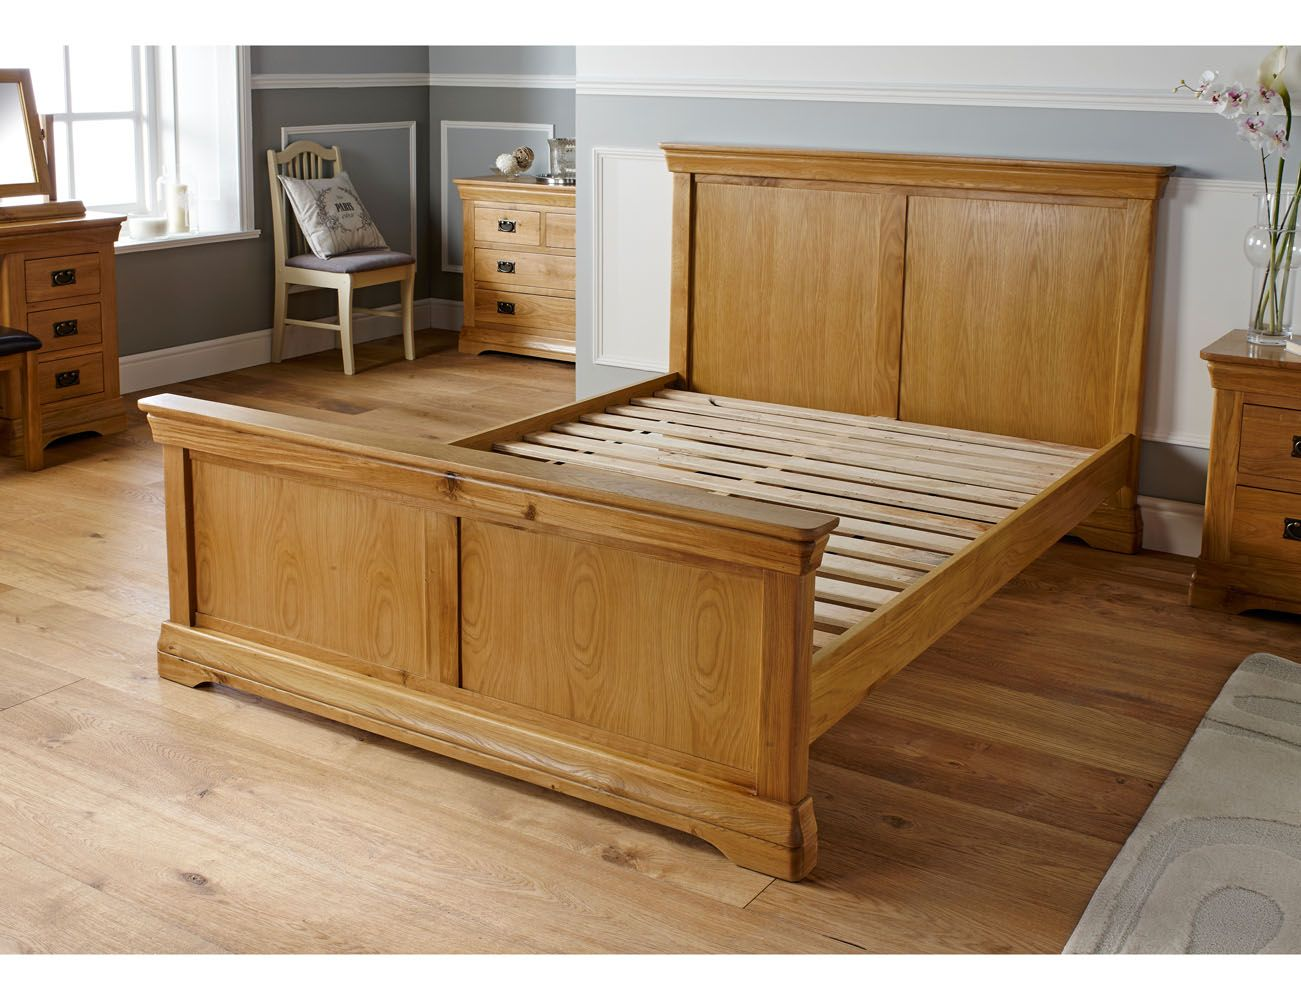 4ft Double Bed Size Farmhouse Country Oak Double Bed 4ft 6 Inches